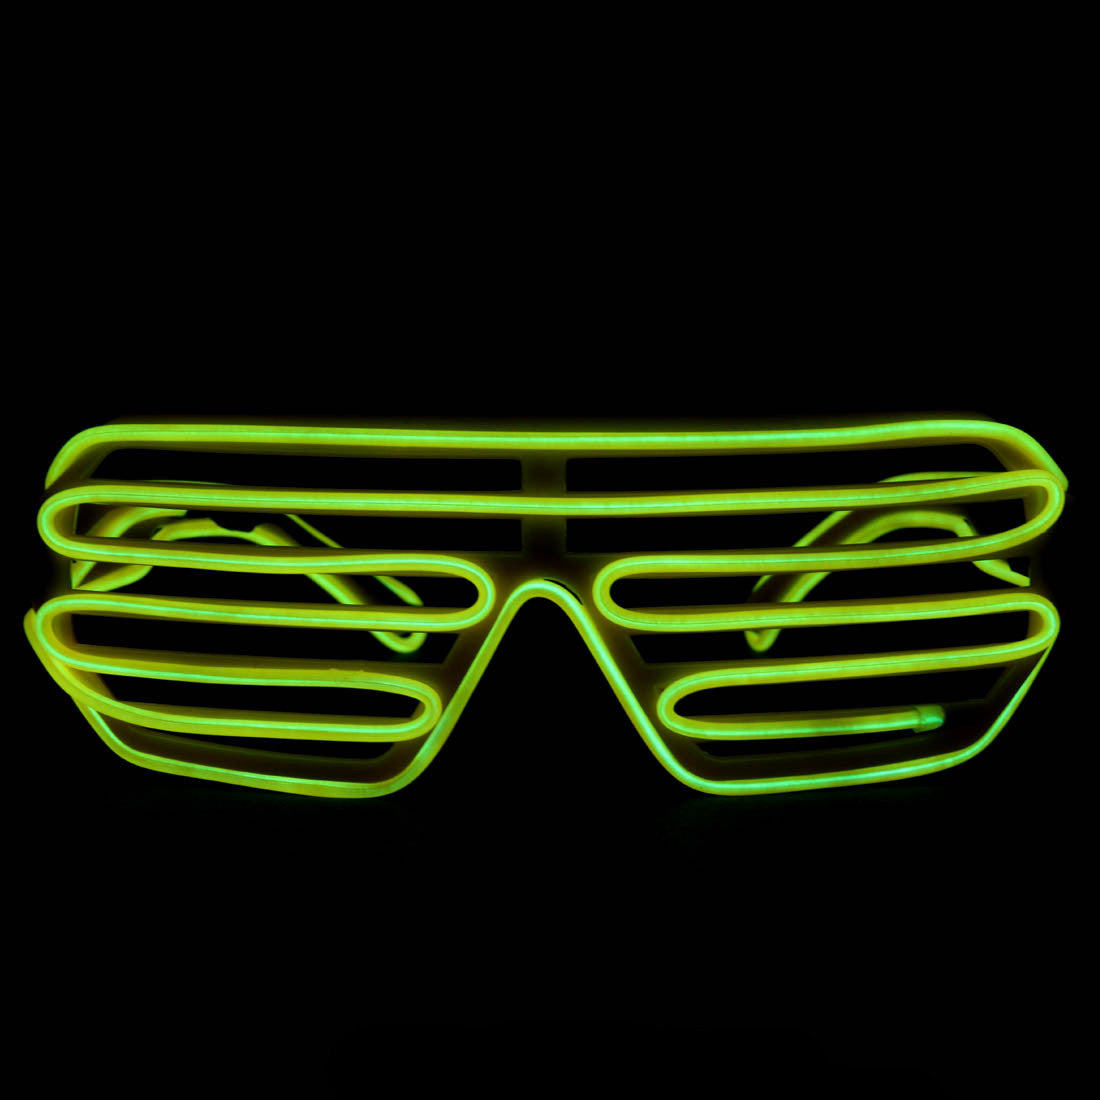 EL Wire Glasses - Yellow Light Up El Wire Shutter Glasses